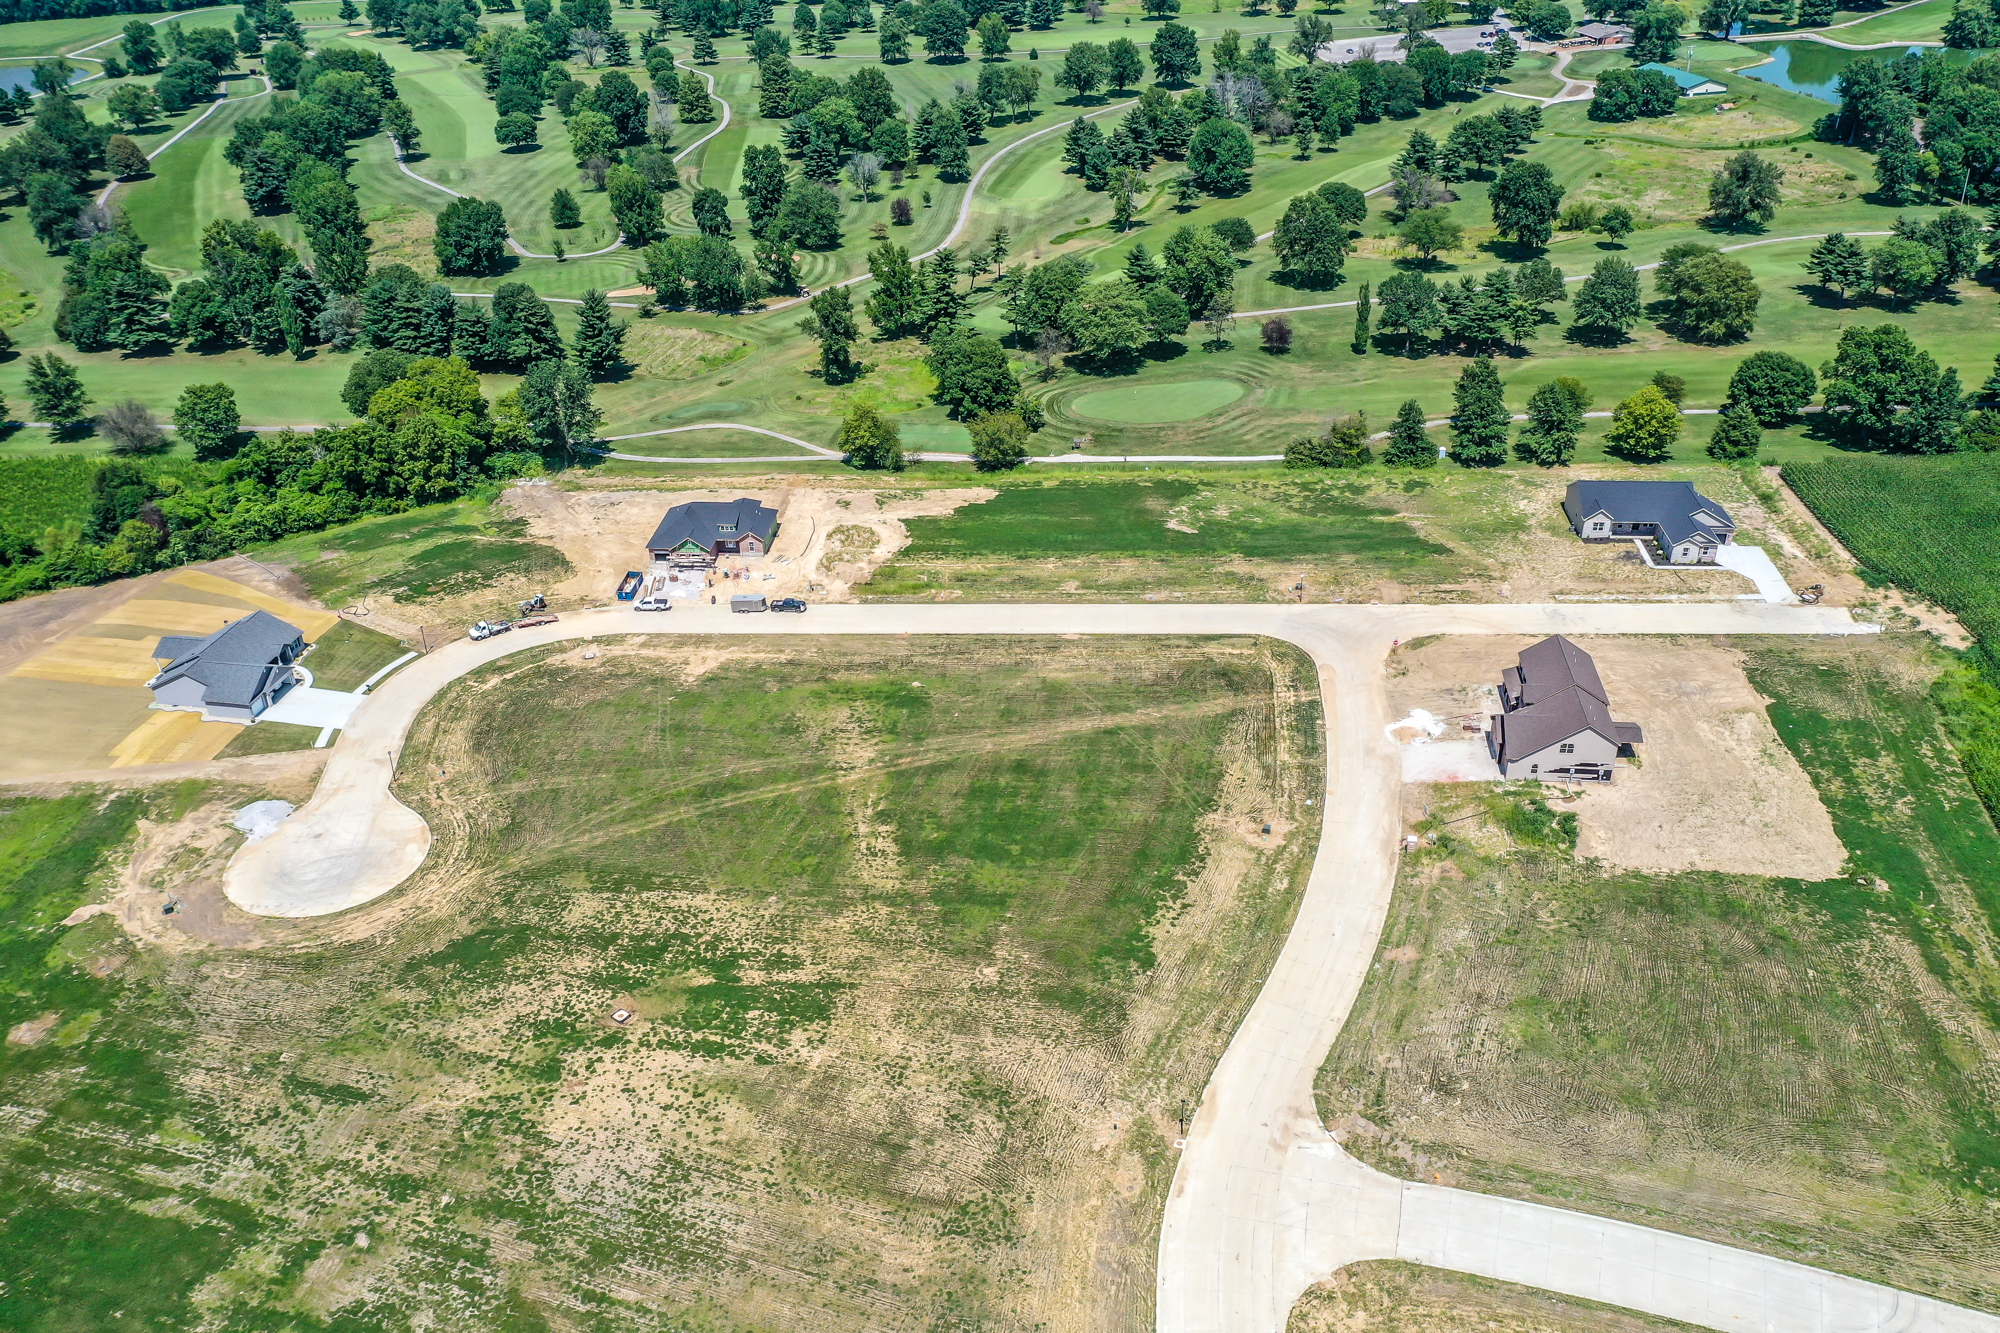 New_Construction_Homes_For_Sale_Shiloh_Illinois_Near_Scott_AFB-25.jpg